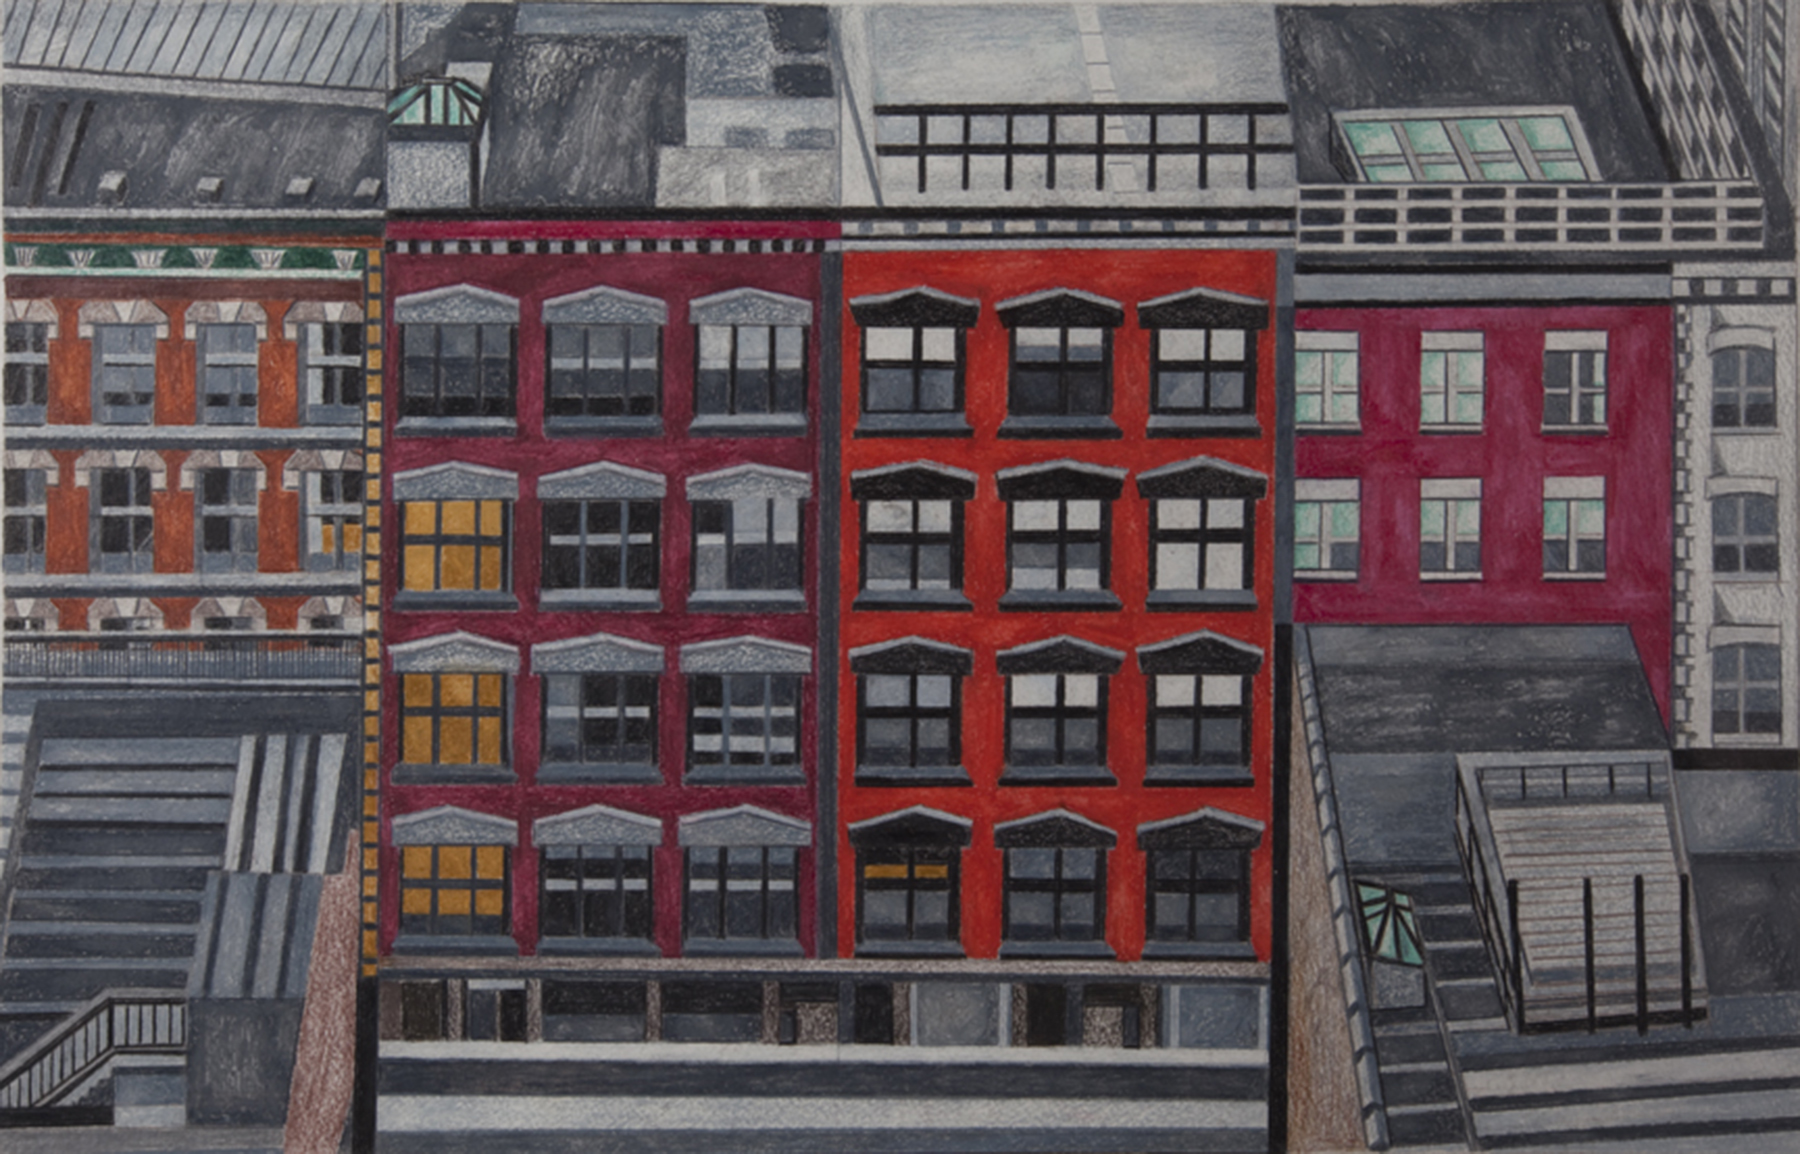 """From Mondrian's Window"" 21 x 29 inches, Caran d'Ache water color pencil, 2013"